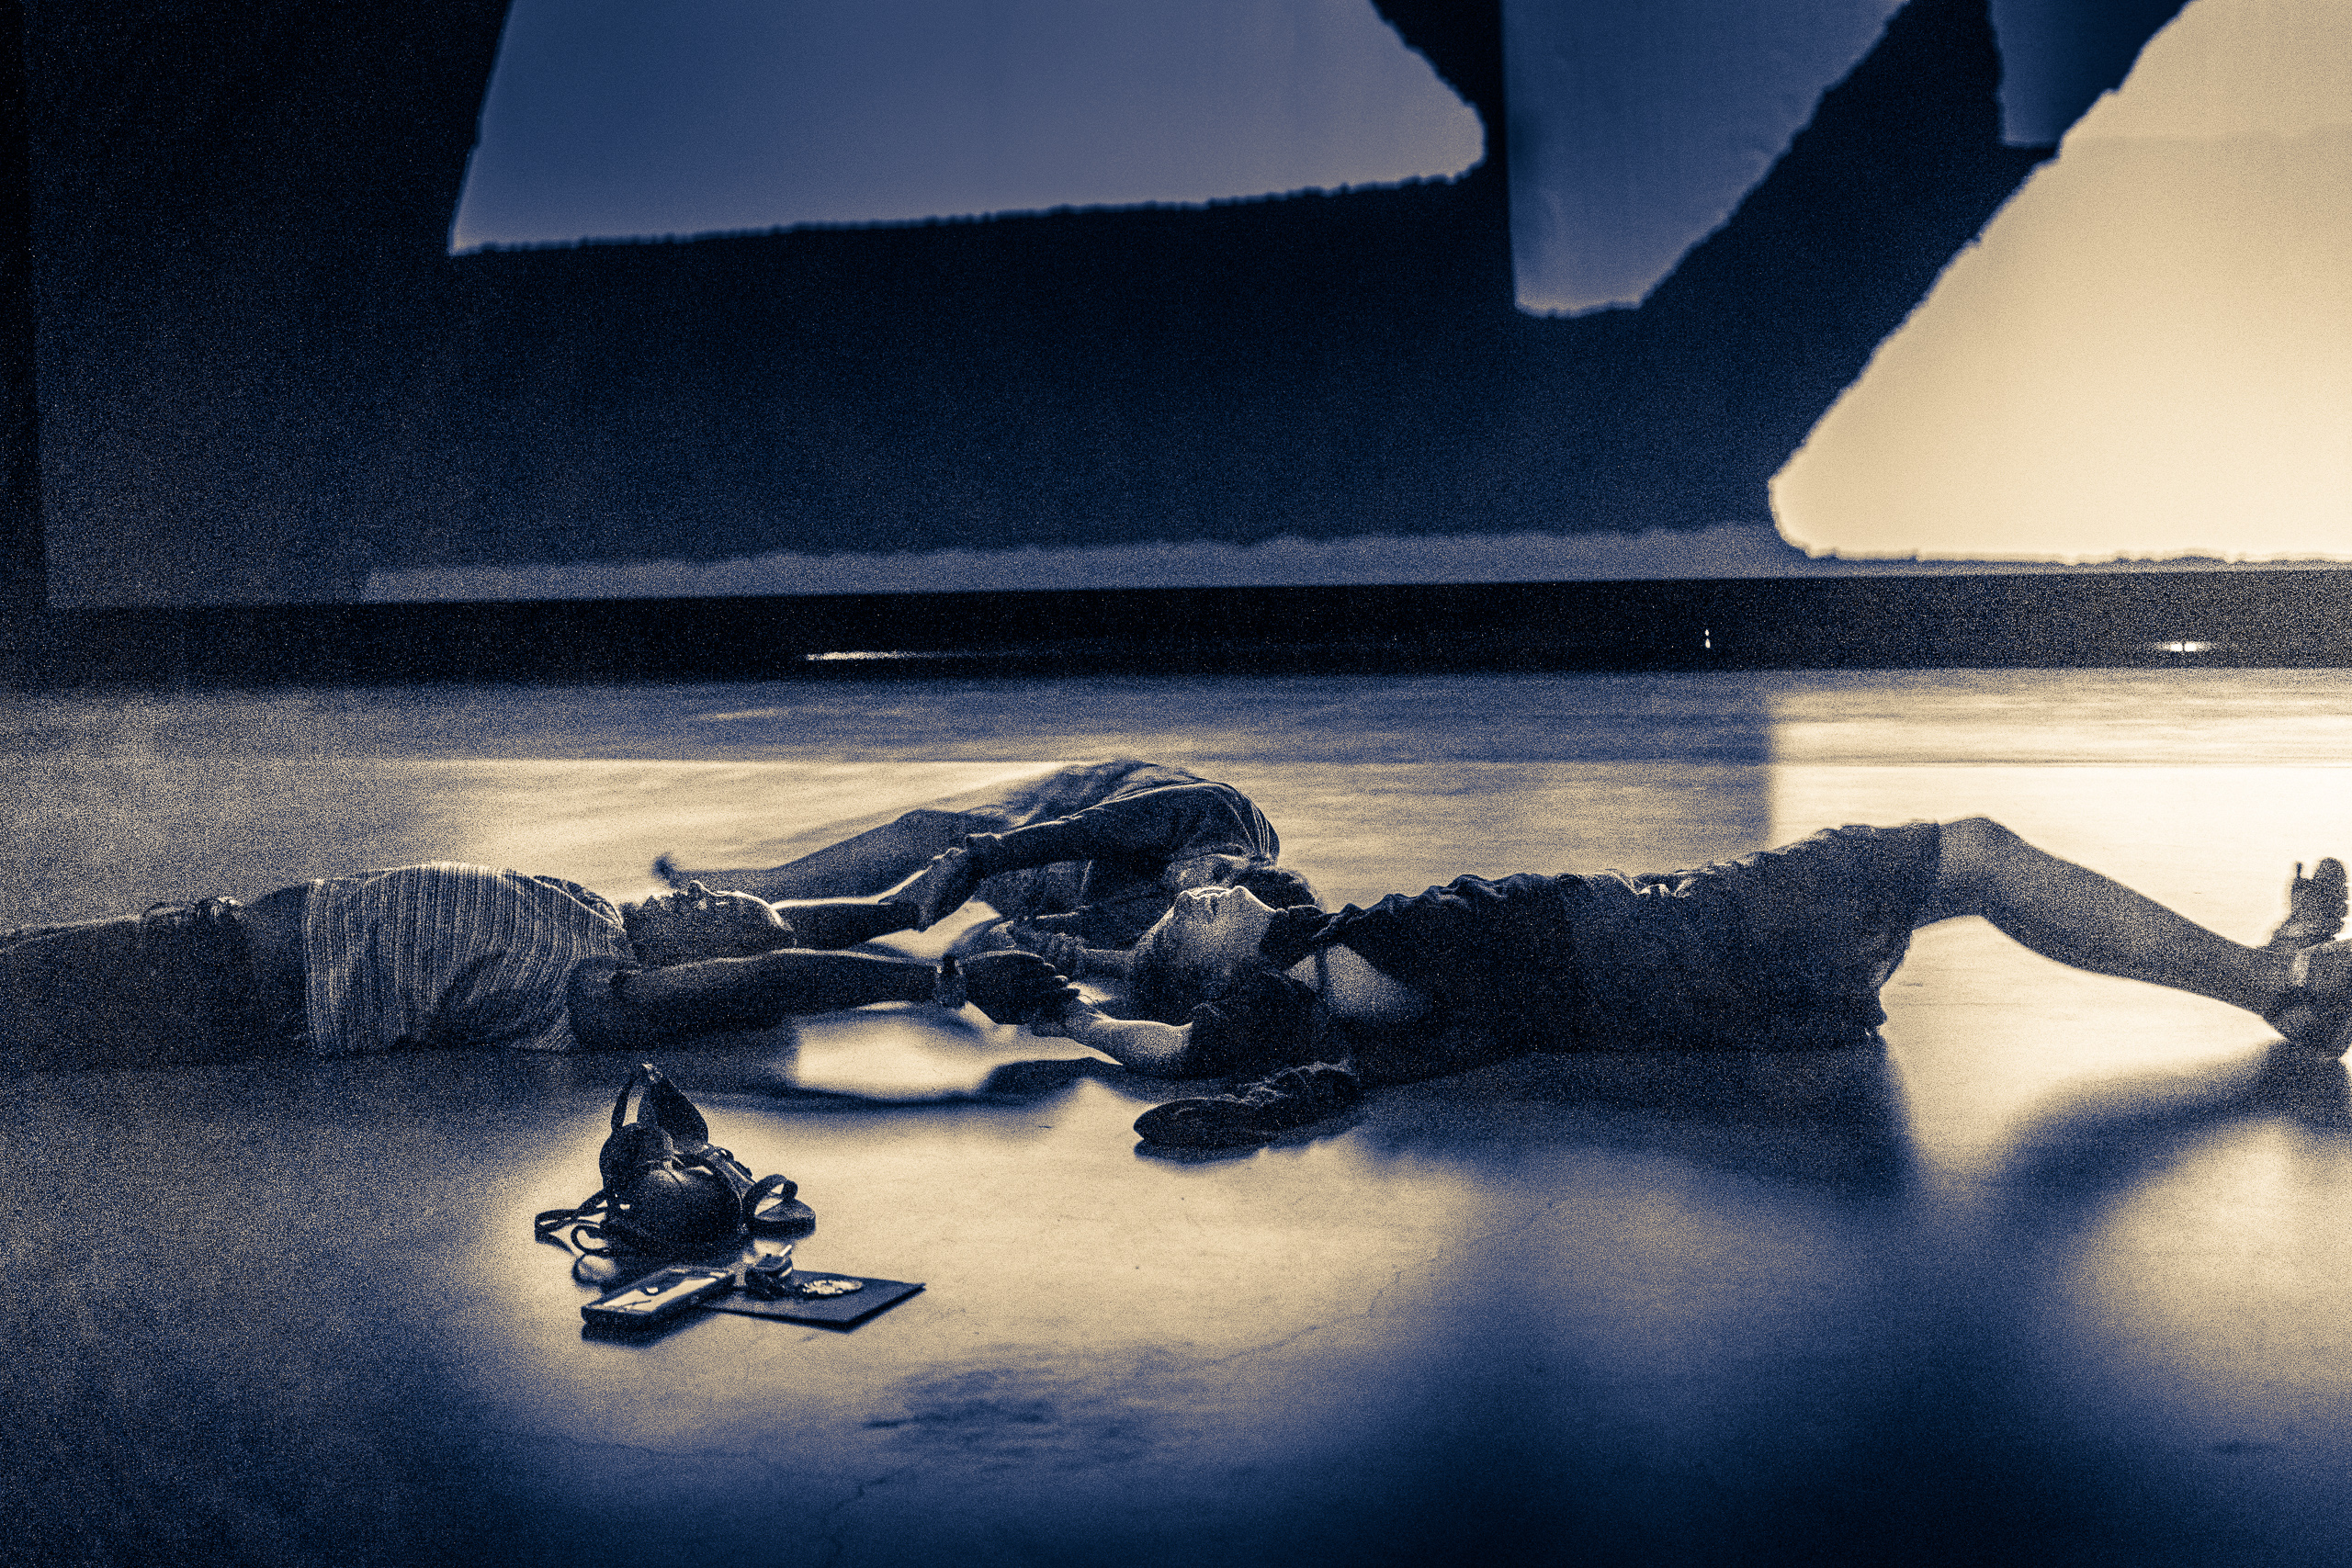 a group of 3 people doing a dance improv on the floor of the Marciano Art Foundation in response to the experience of Olafur Eliasson's Reality Projector installation